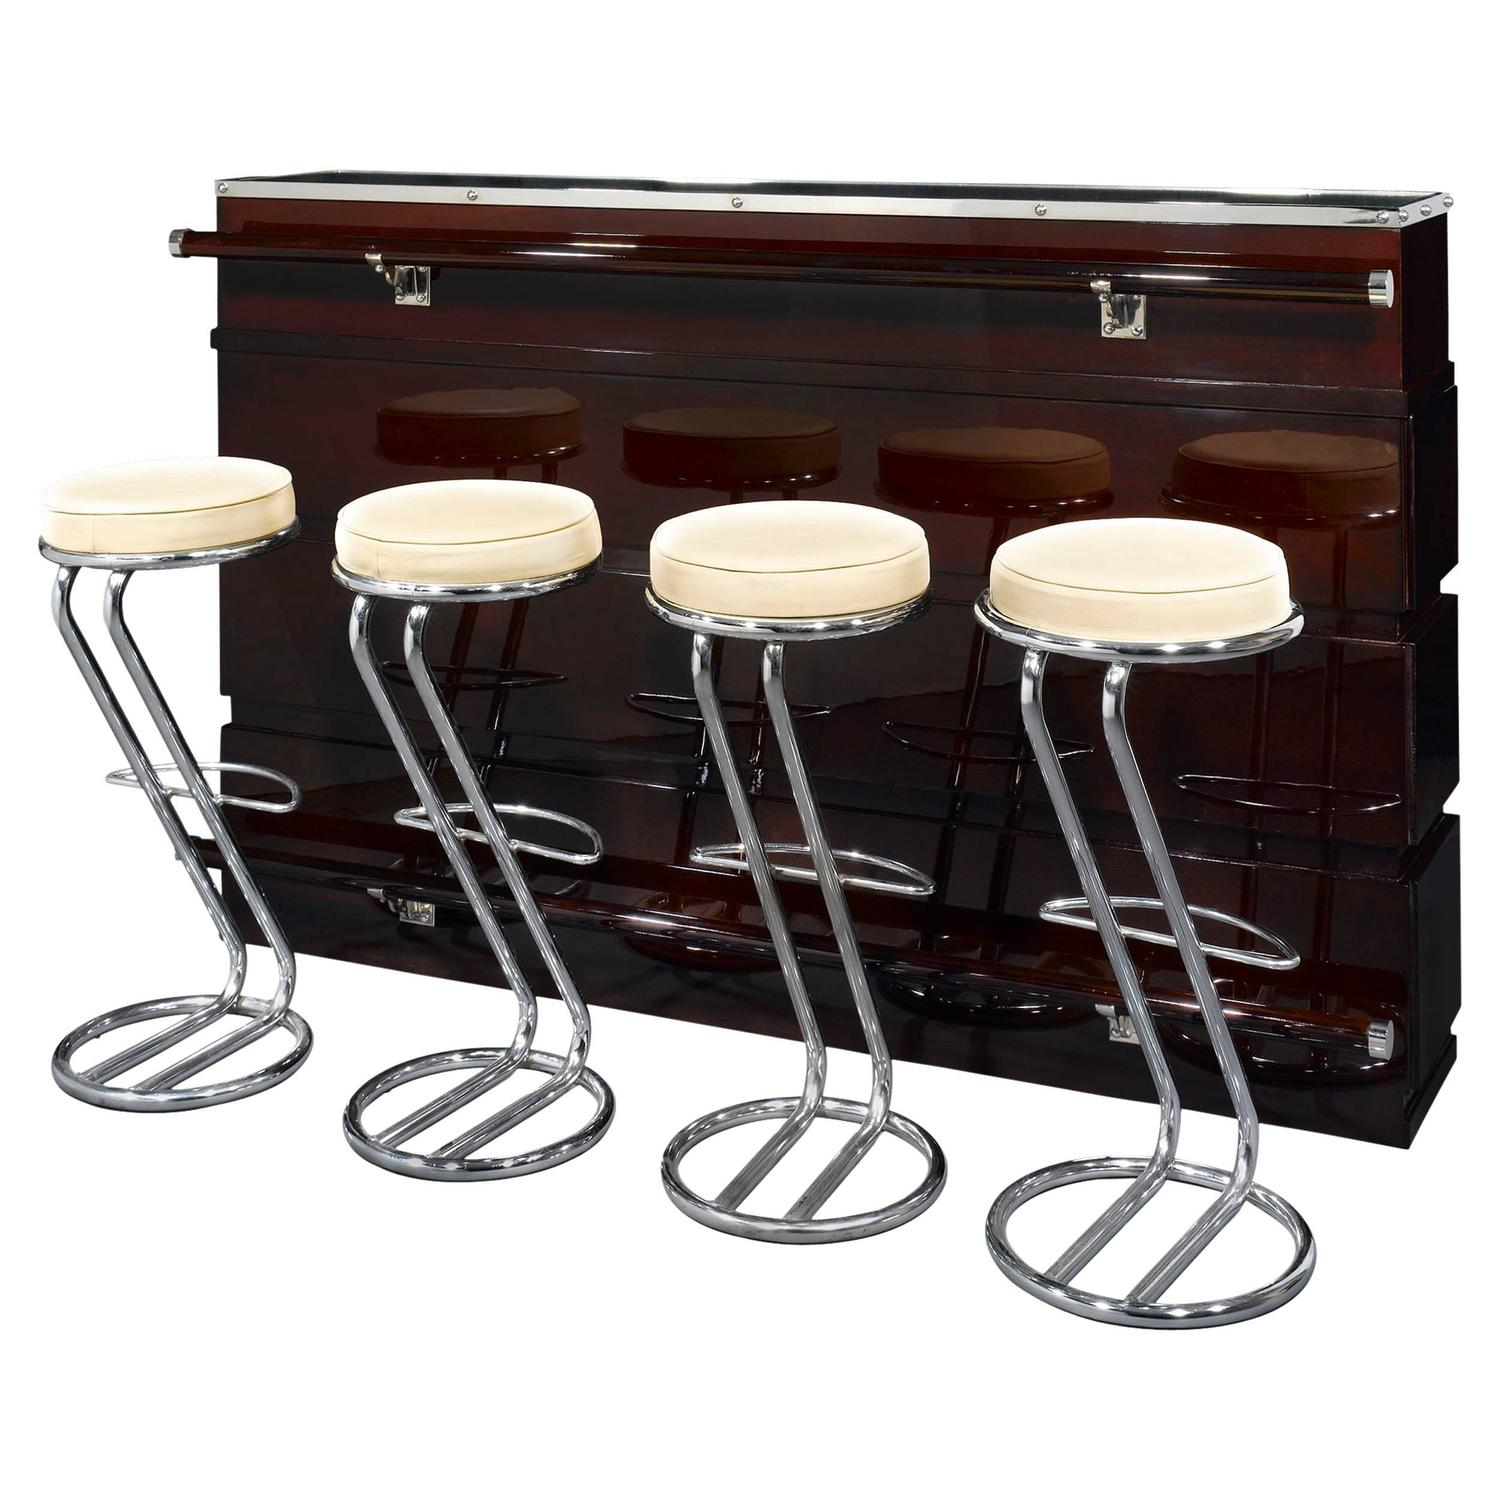 art deco bar and stools for sale at 1stdibs. Black Bedroom Furniture Sets. Home Design Ideas